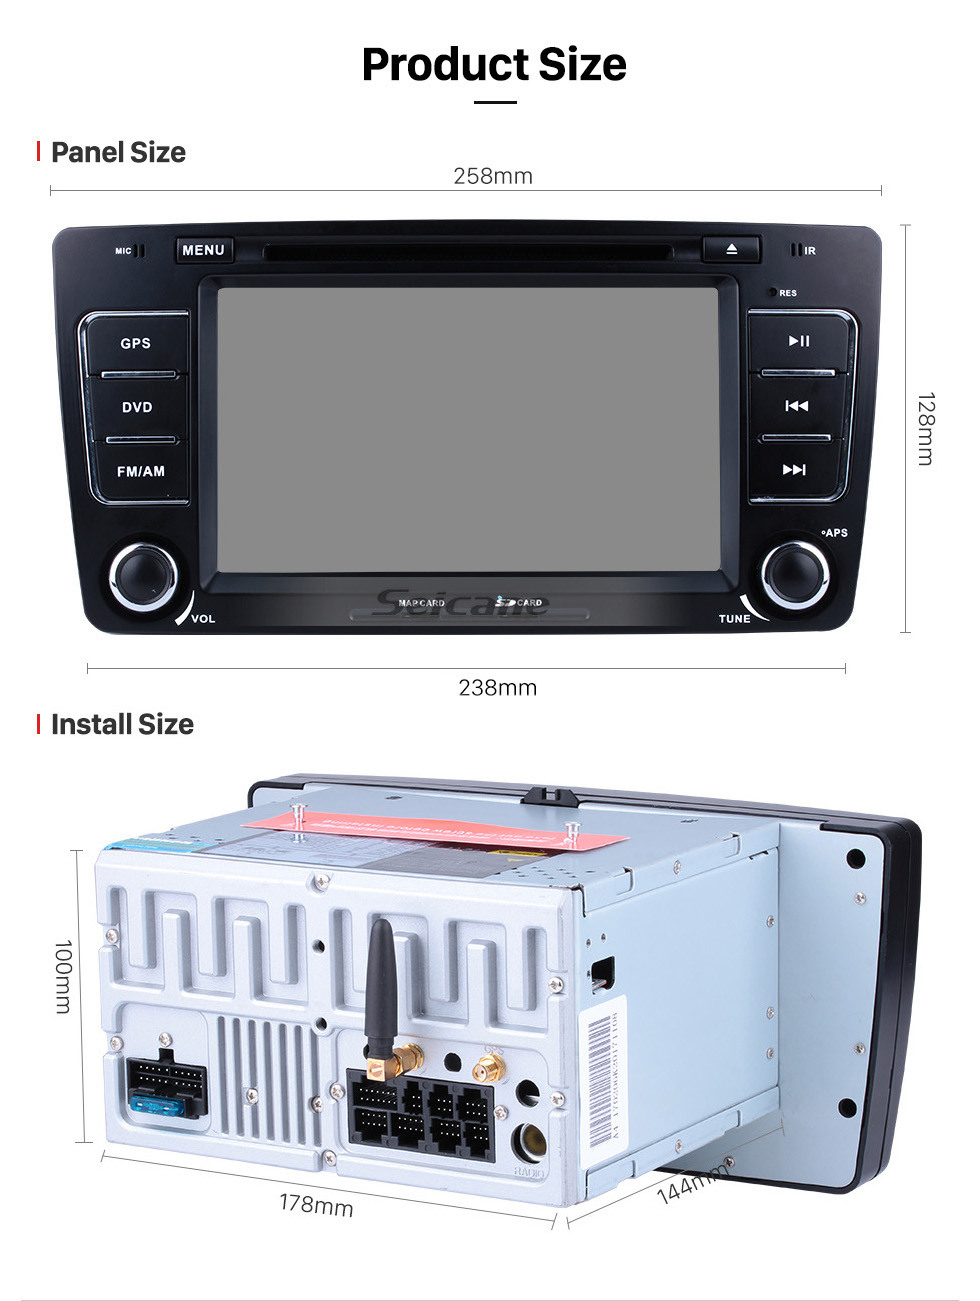 Seicane HD 1024*600 Android 9.0 2009-2013 Skoda Octavia Radio Upgrade with in Car Sat Nav Stereo Multi-touch Capacitive Screen 3G WiFi Bluetooth Mirror Link OBD2 AUX MP3 Steering Wheel Control HD 1080P